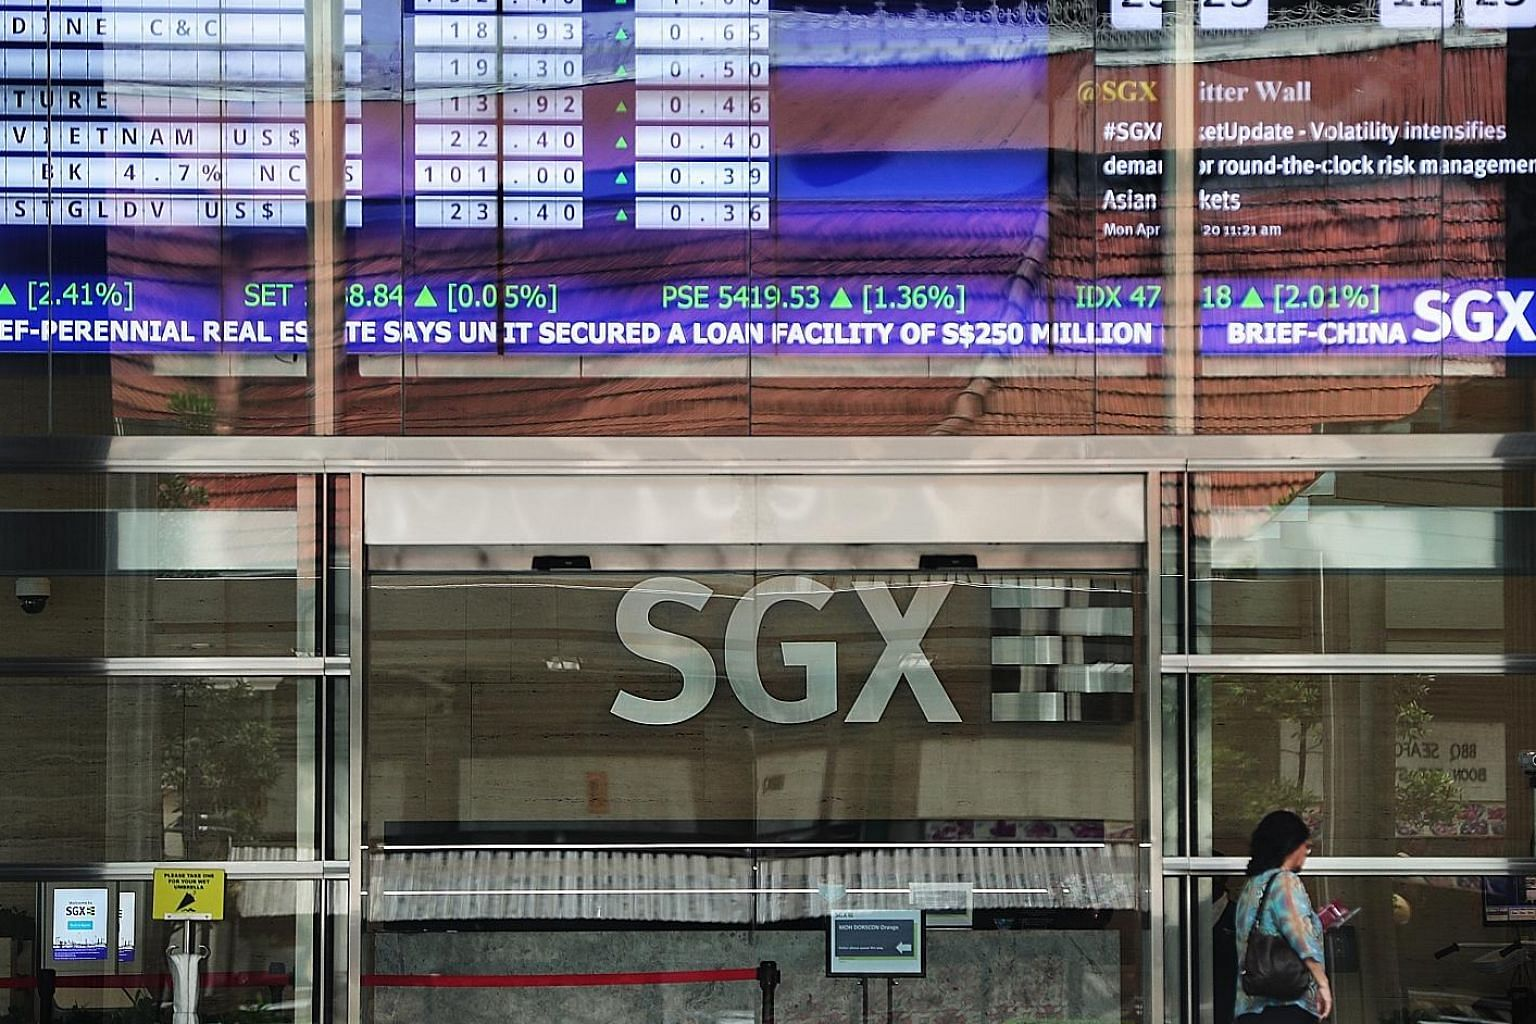 SGX, whose return has nearly doubled to 11 per cent from a 10-year average of 5.8 per cent, is one of the firms in Temasek's portfolio that have managed to keep total returns in positive territory.